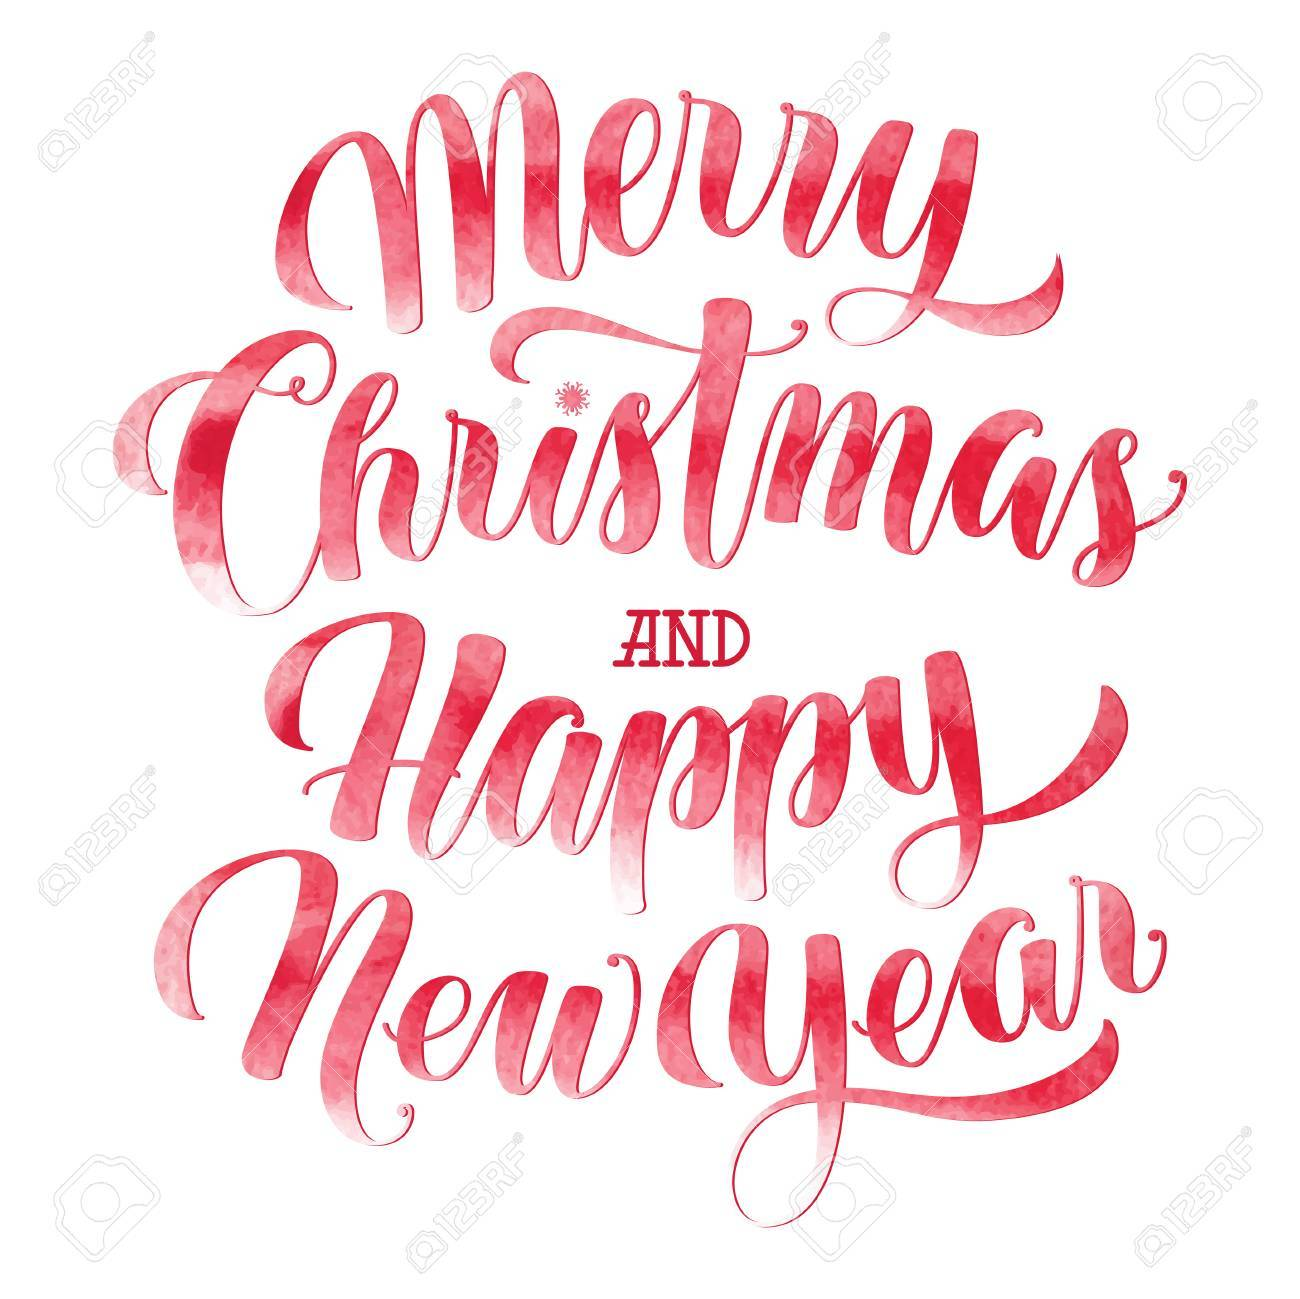 watercolor merry christmas and happy new year text calligraphic royalty free cliparts vectors and stock illustration image 67655952 watercolor merry christmas and happy new year text calligraphic